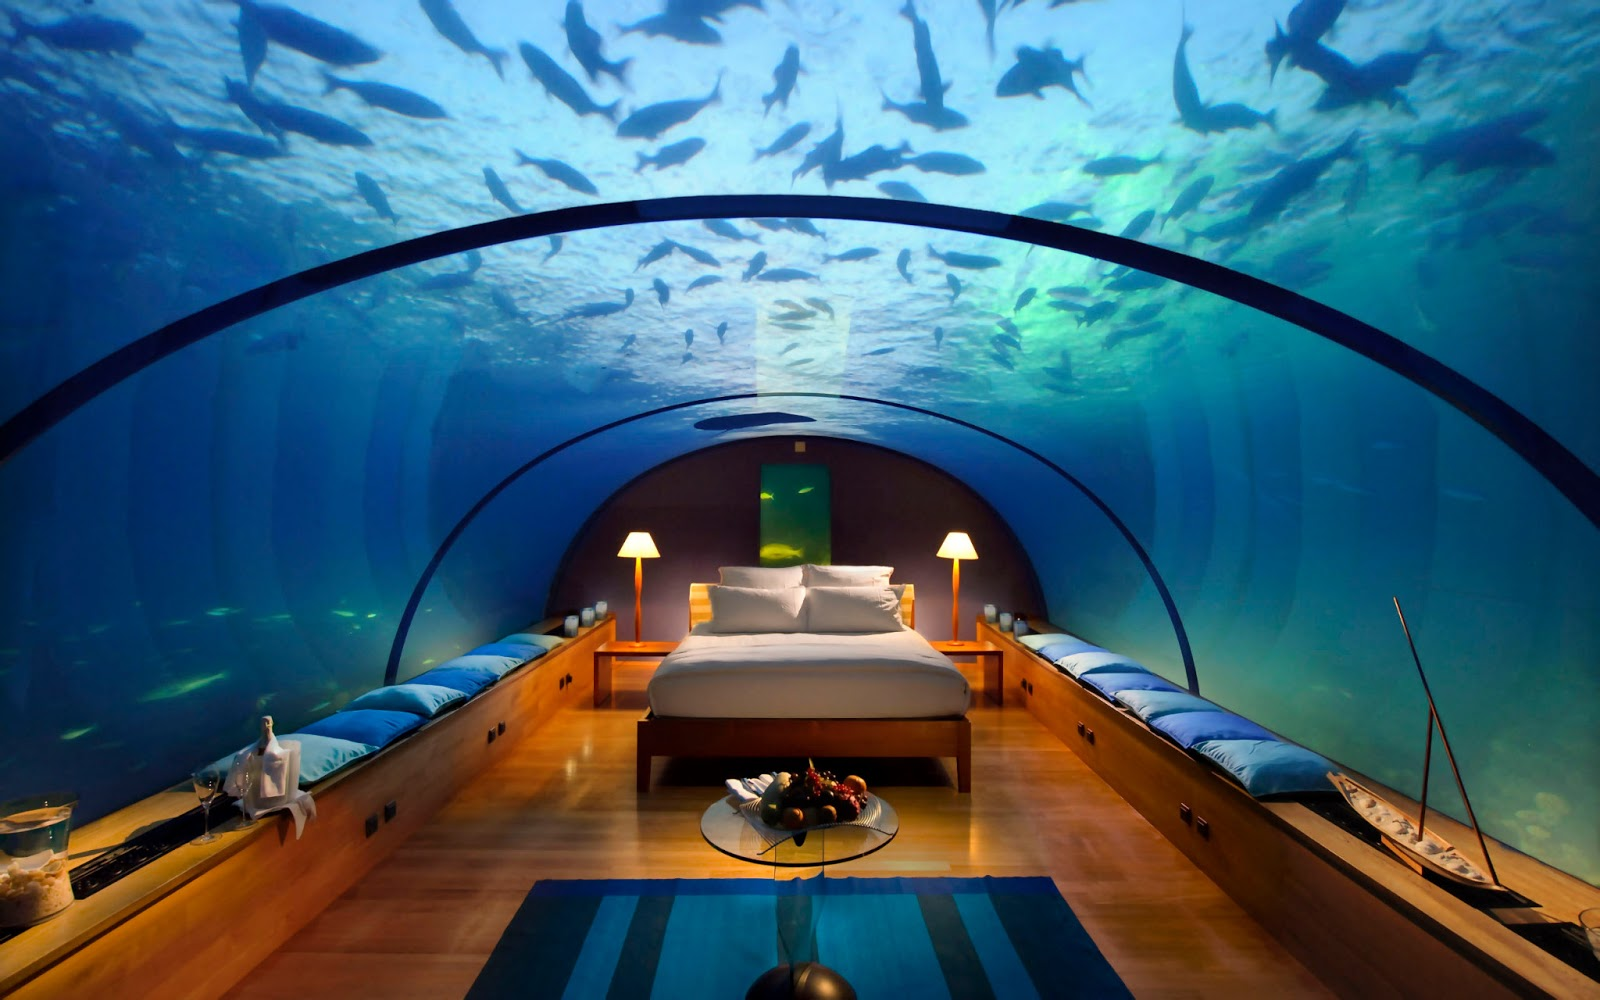 Dubai hotel under water best branded luxury hotel